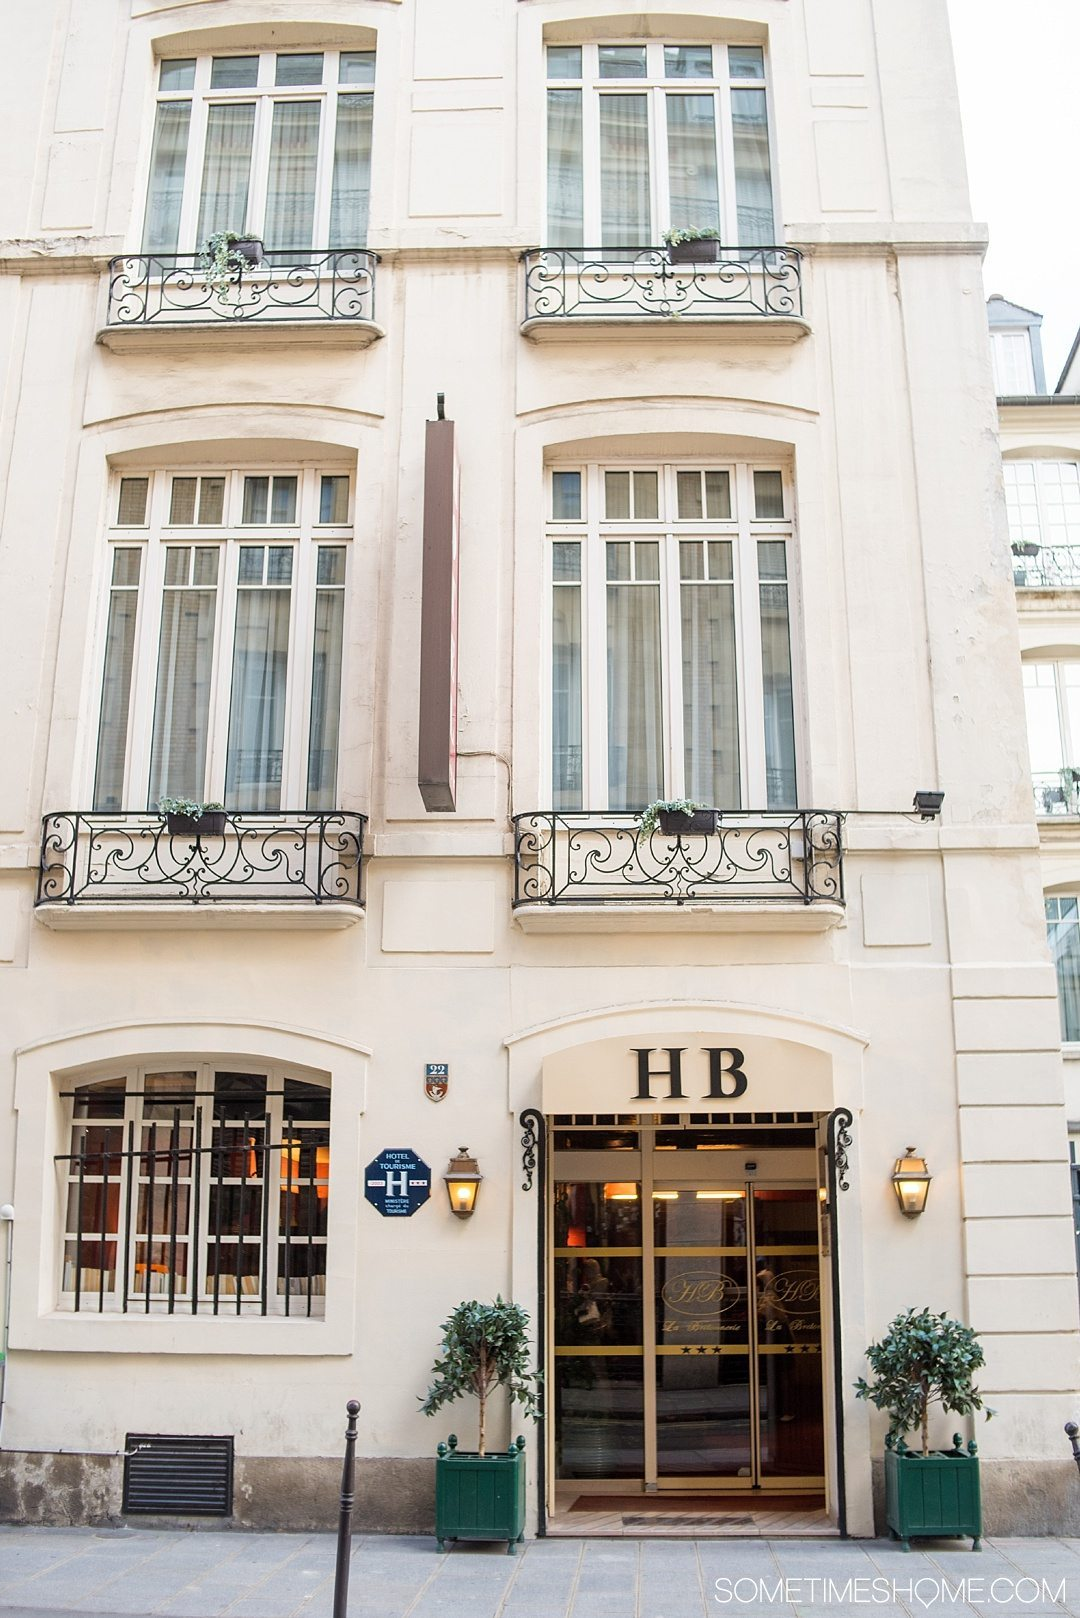 Le marais paris accommodation boutique hotel in france for Paris hotel address